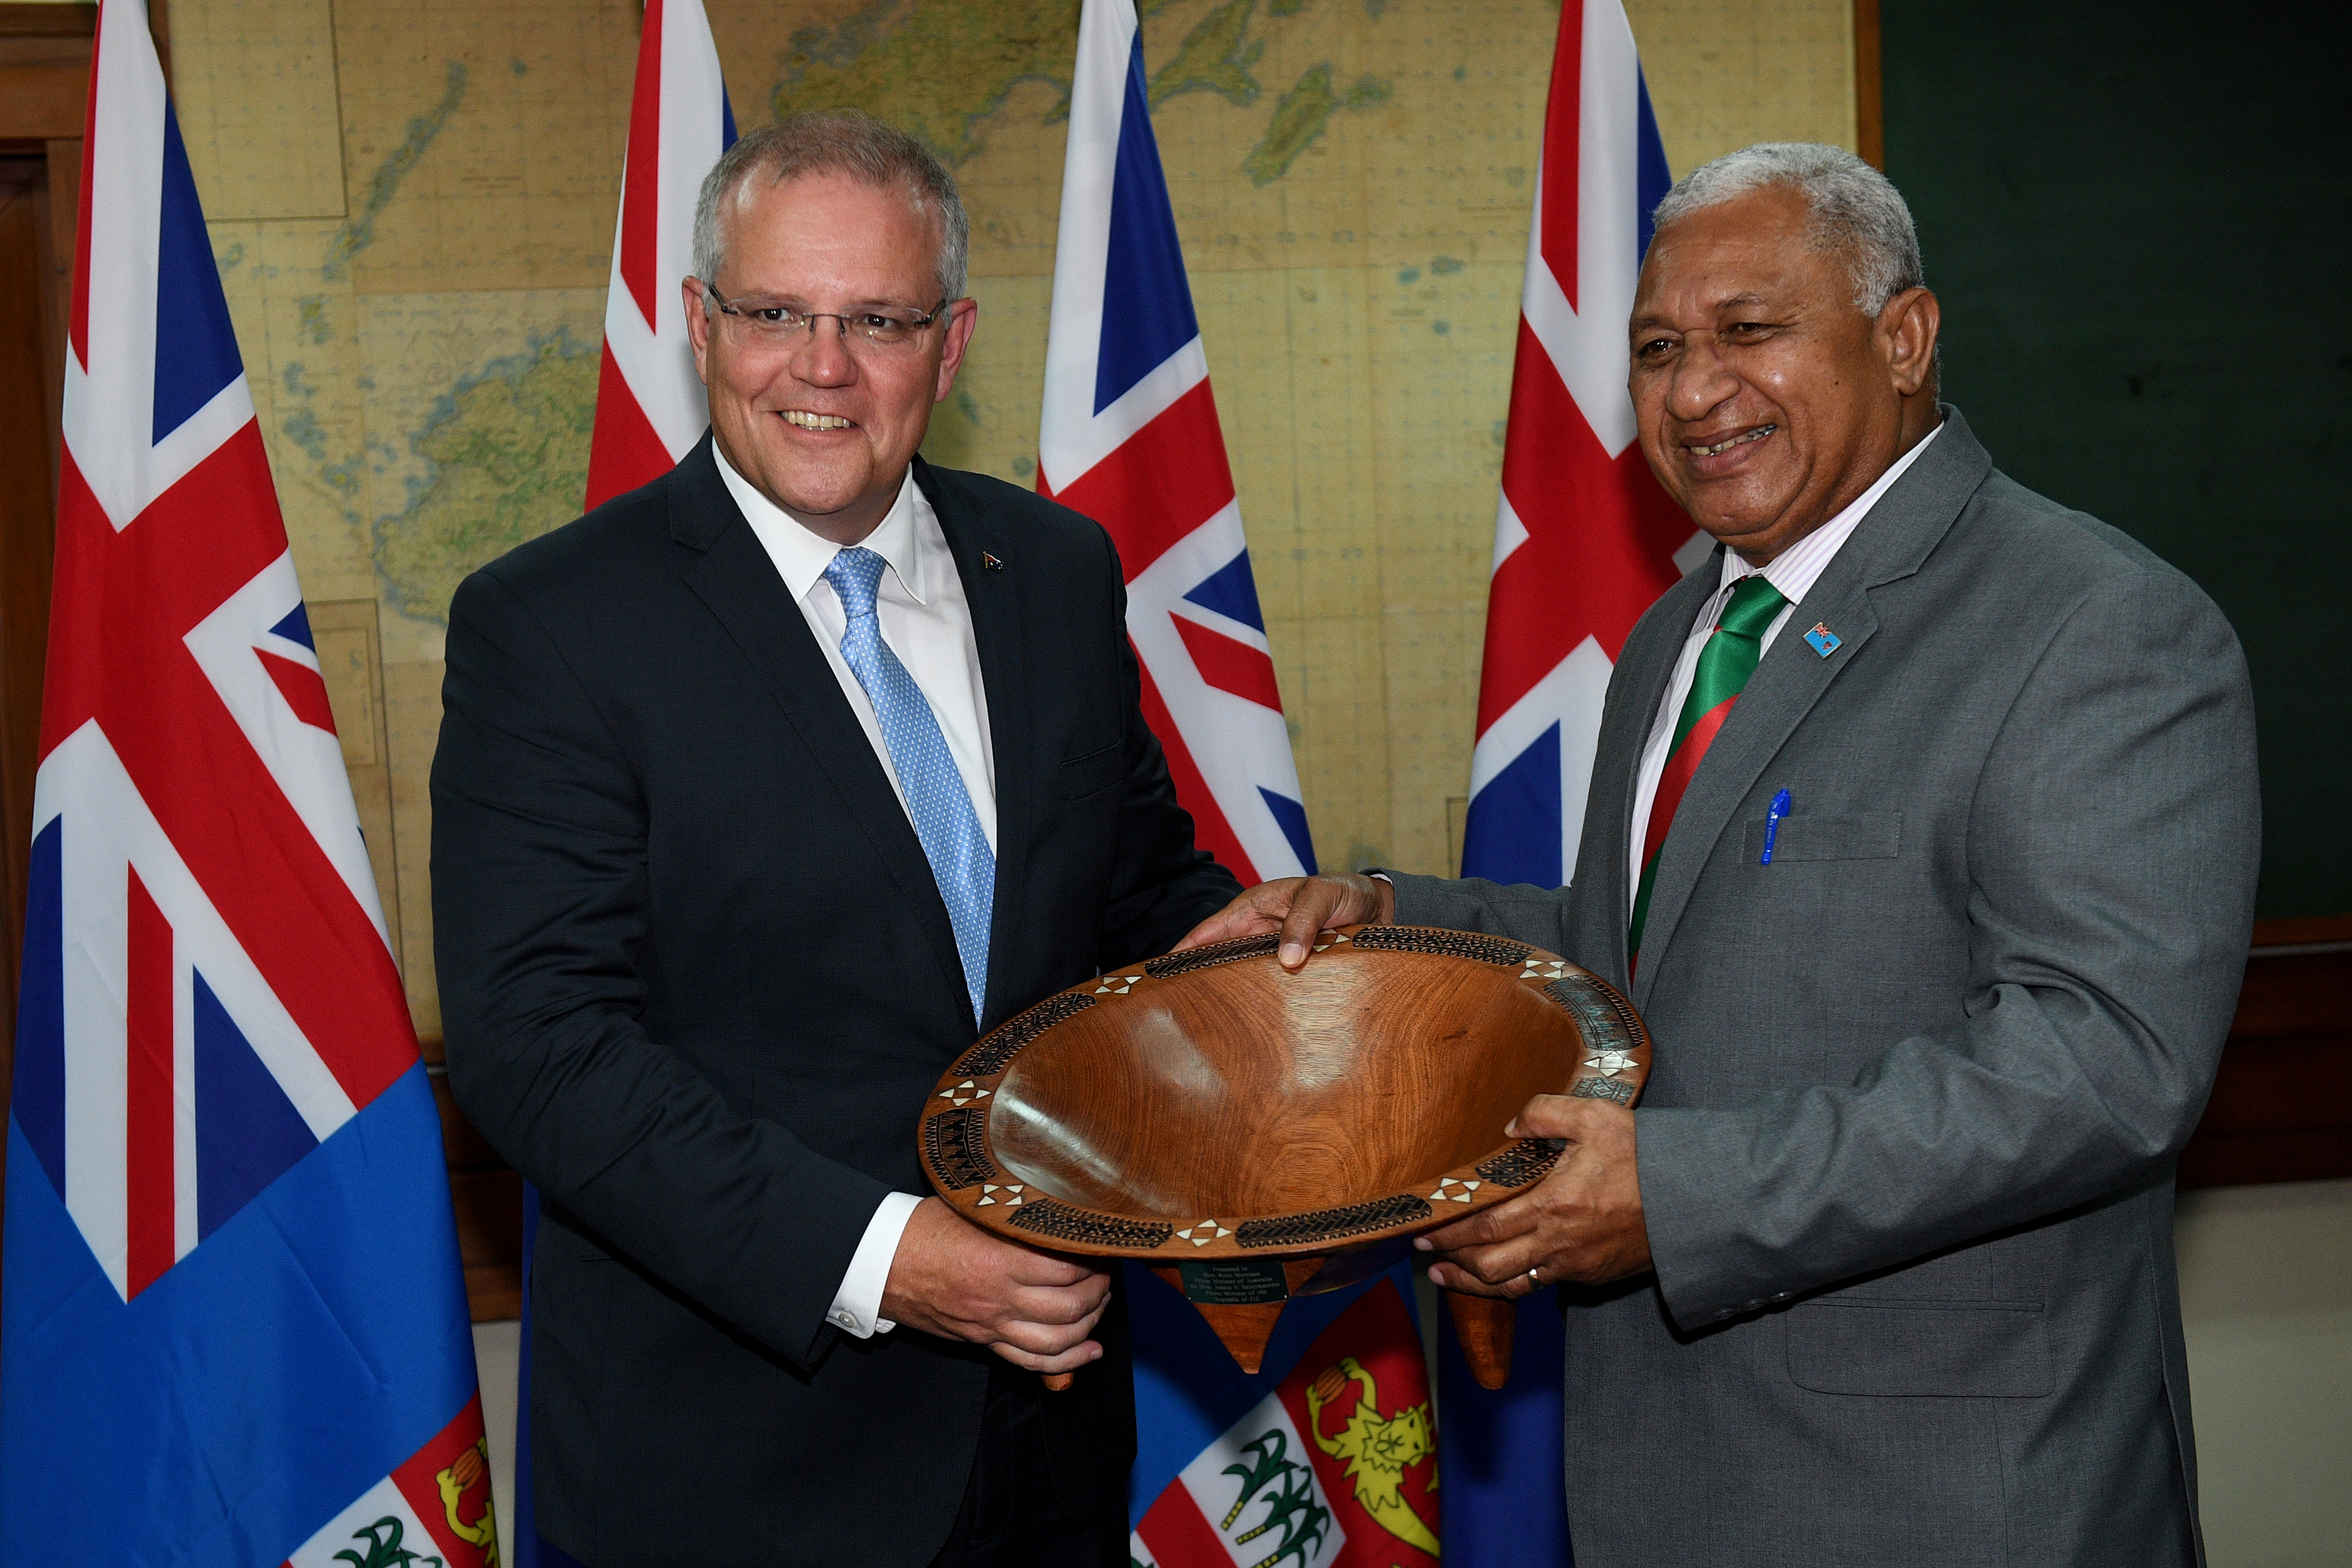 Federal Government's relations with Pacific Islands tested